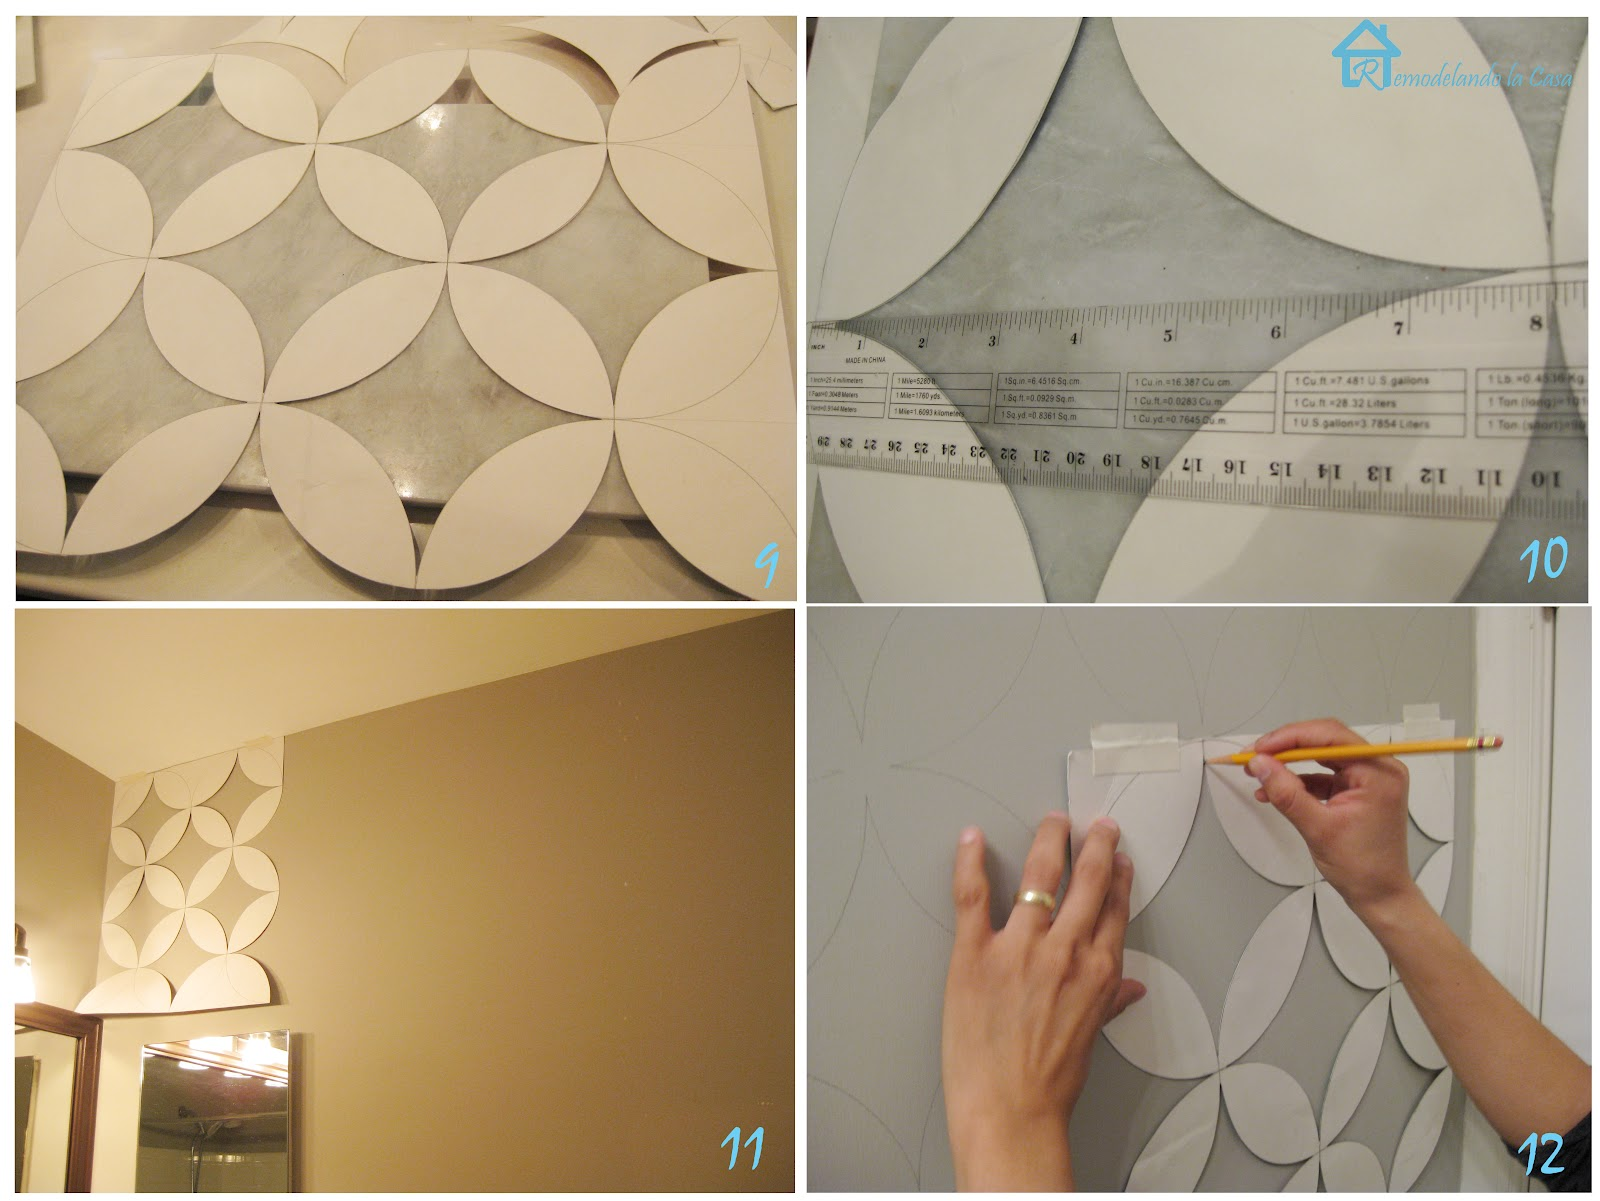 Painted geometric wall remodelando la casa - Geometric wall designs with paint ...